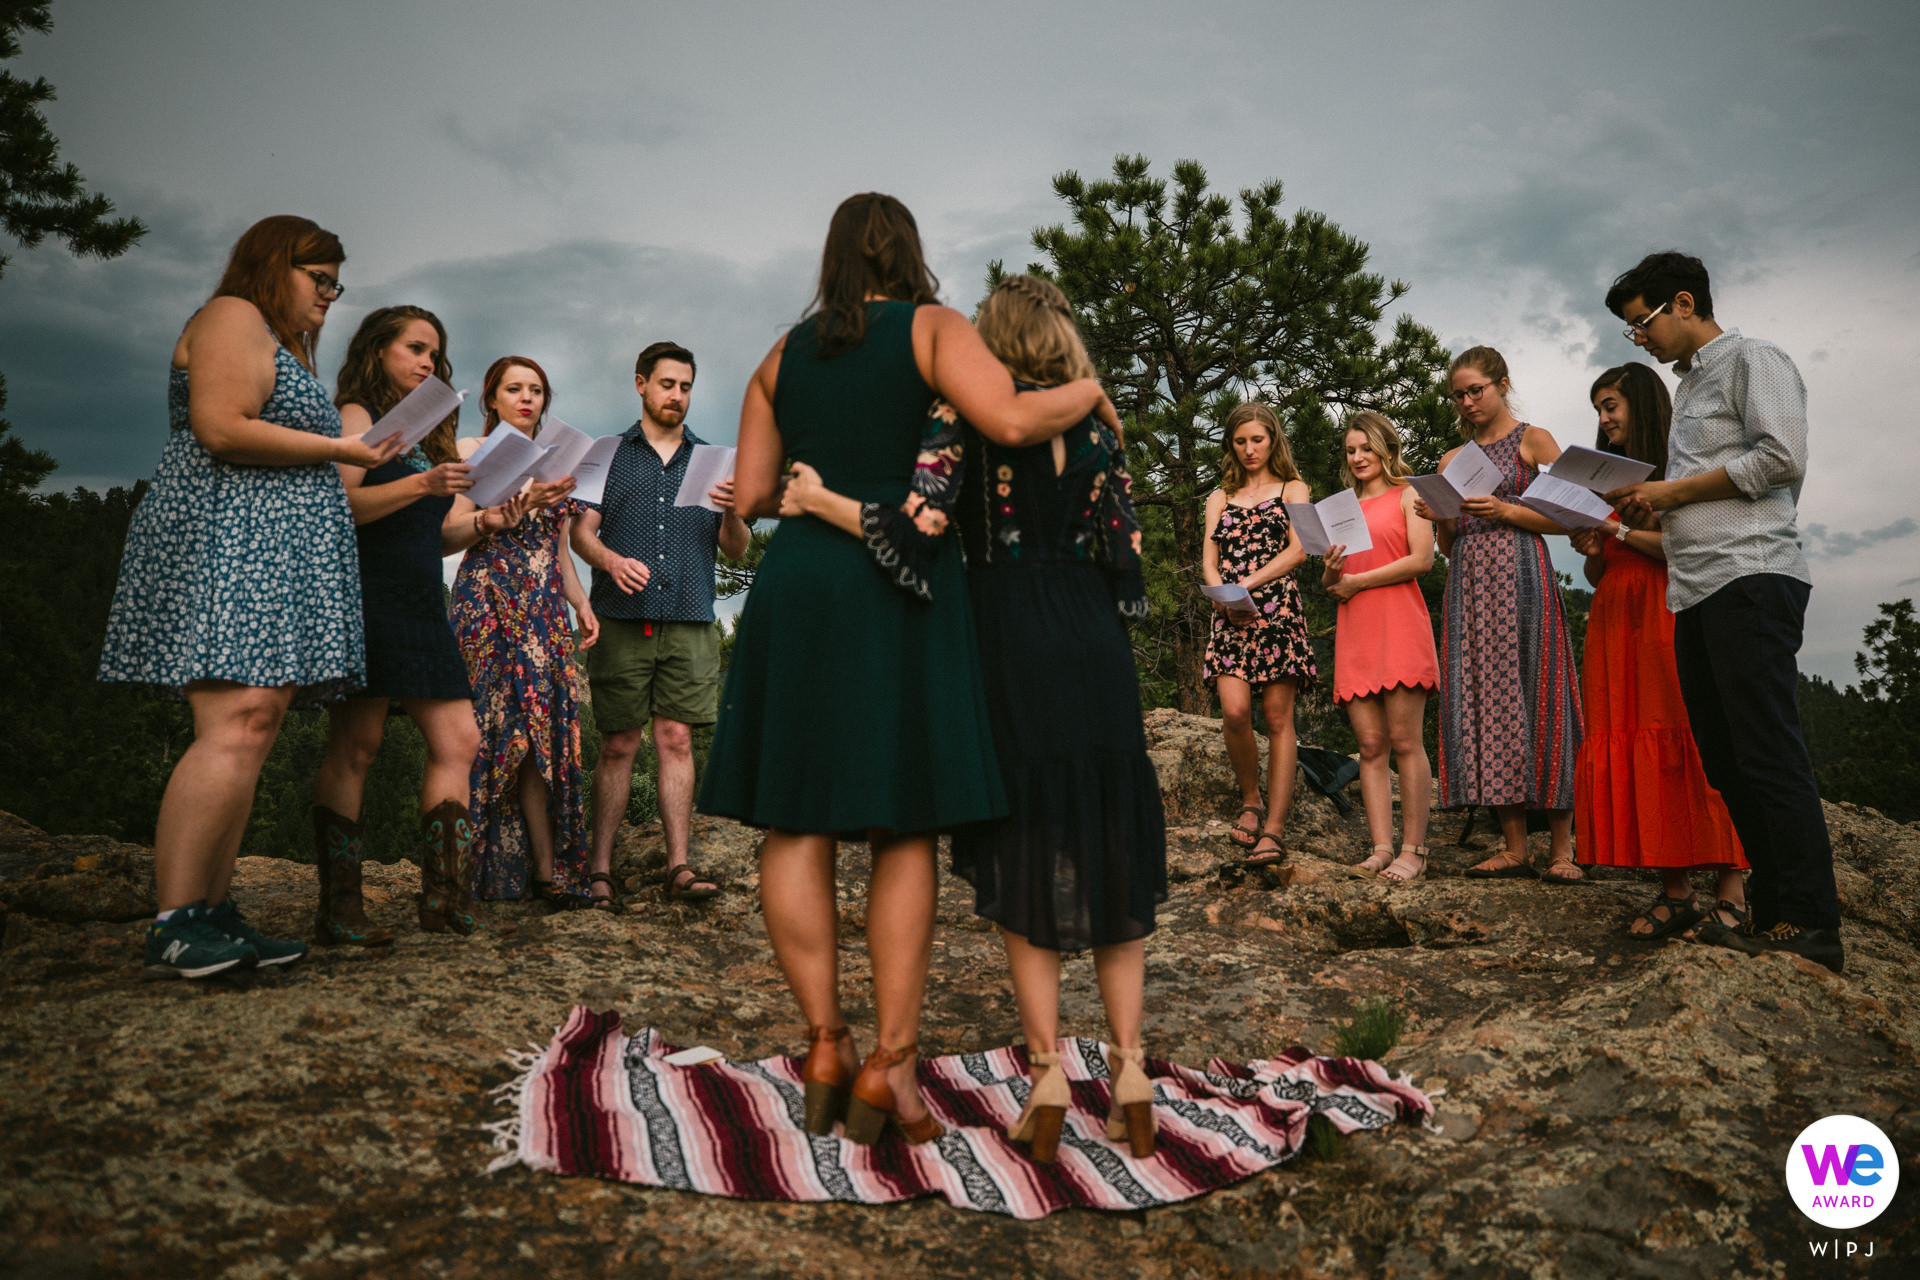 Campsite Wedding Photo at Staunton State Park, CO | The couple's siblings and closest friends were in attendance